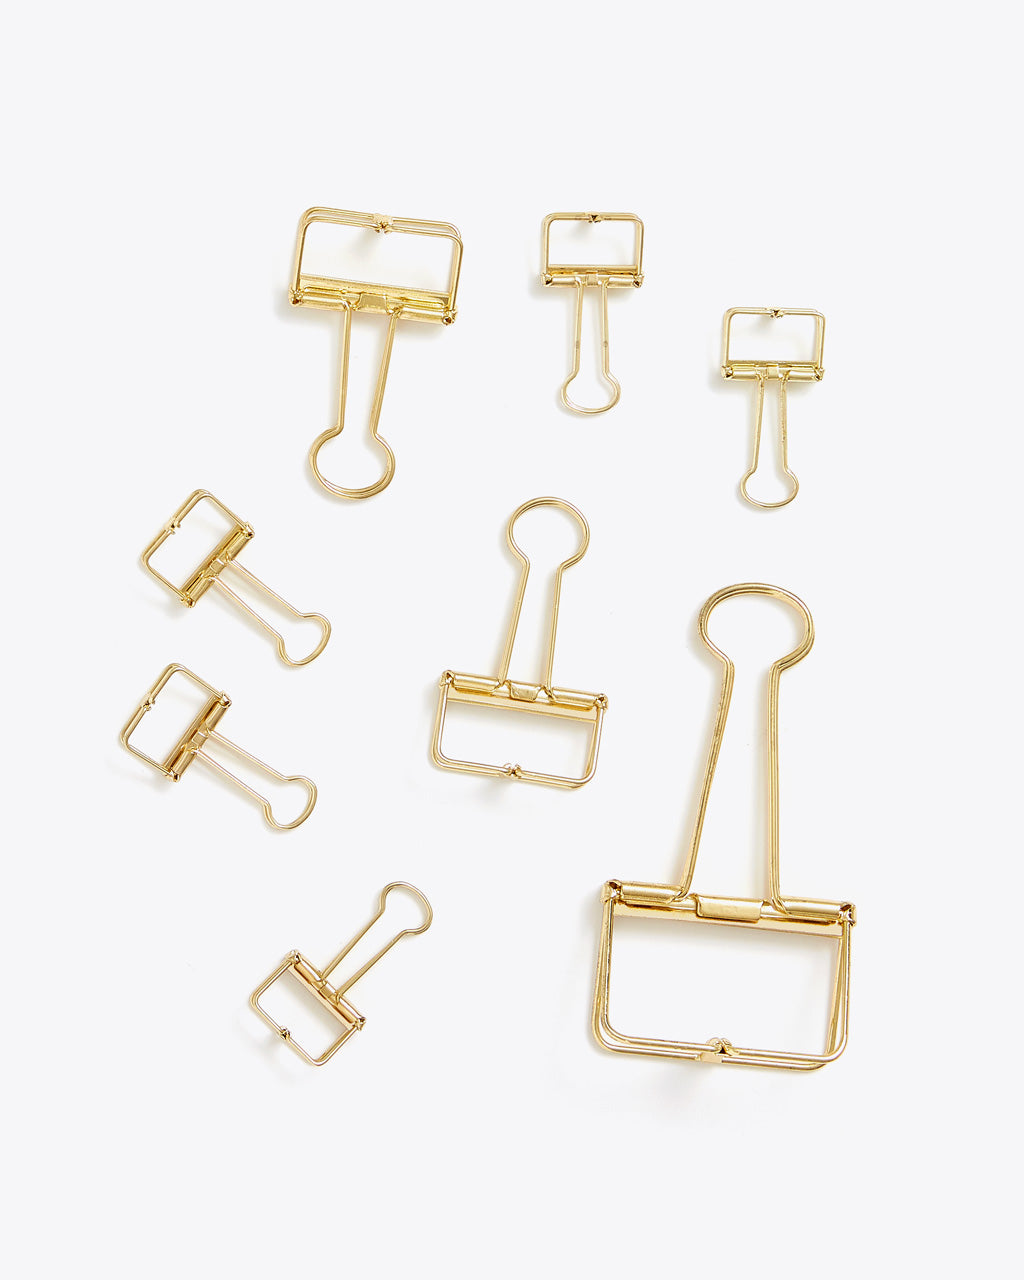 assortment of various sized binder clips